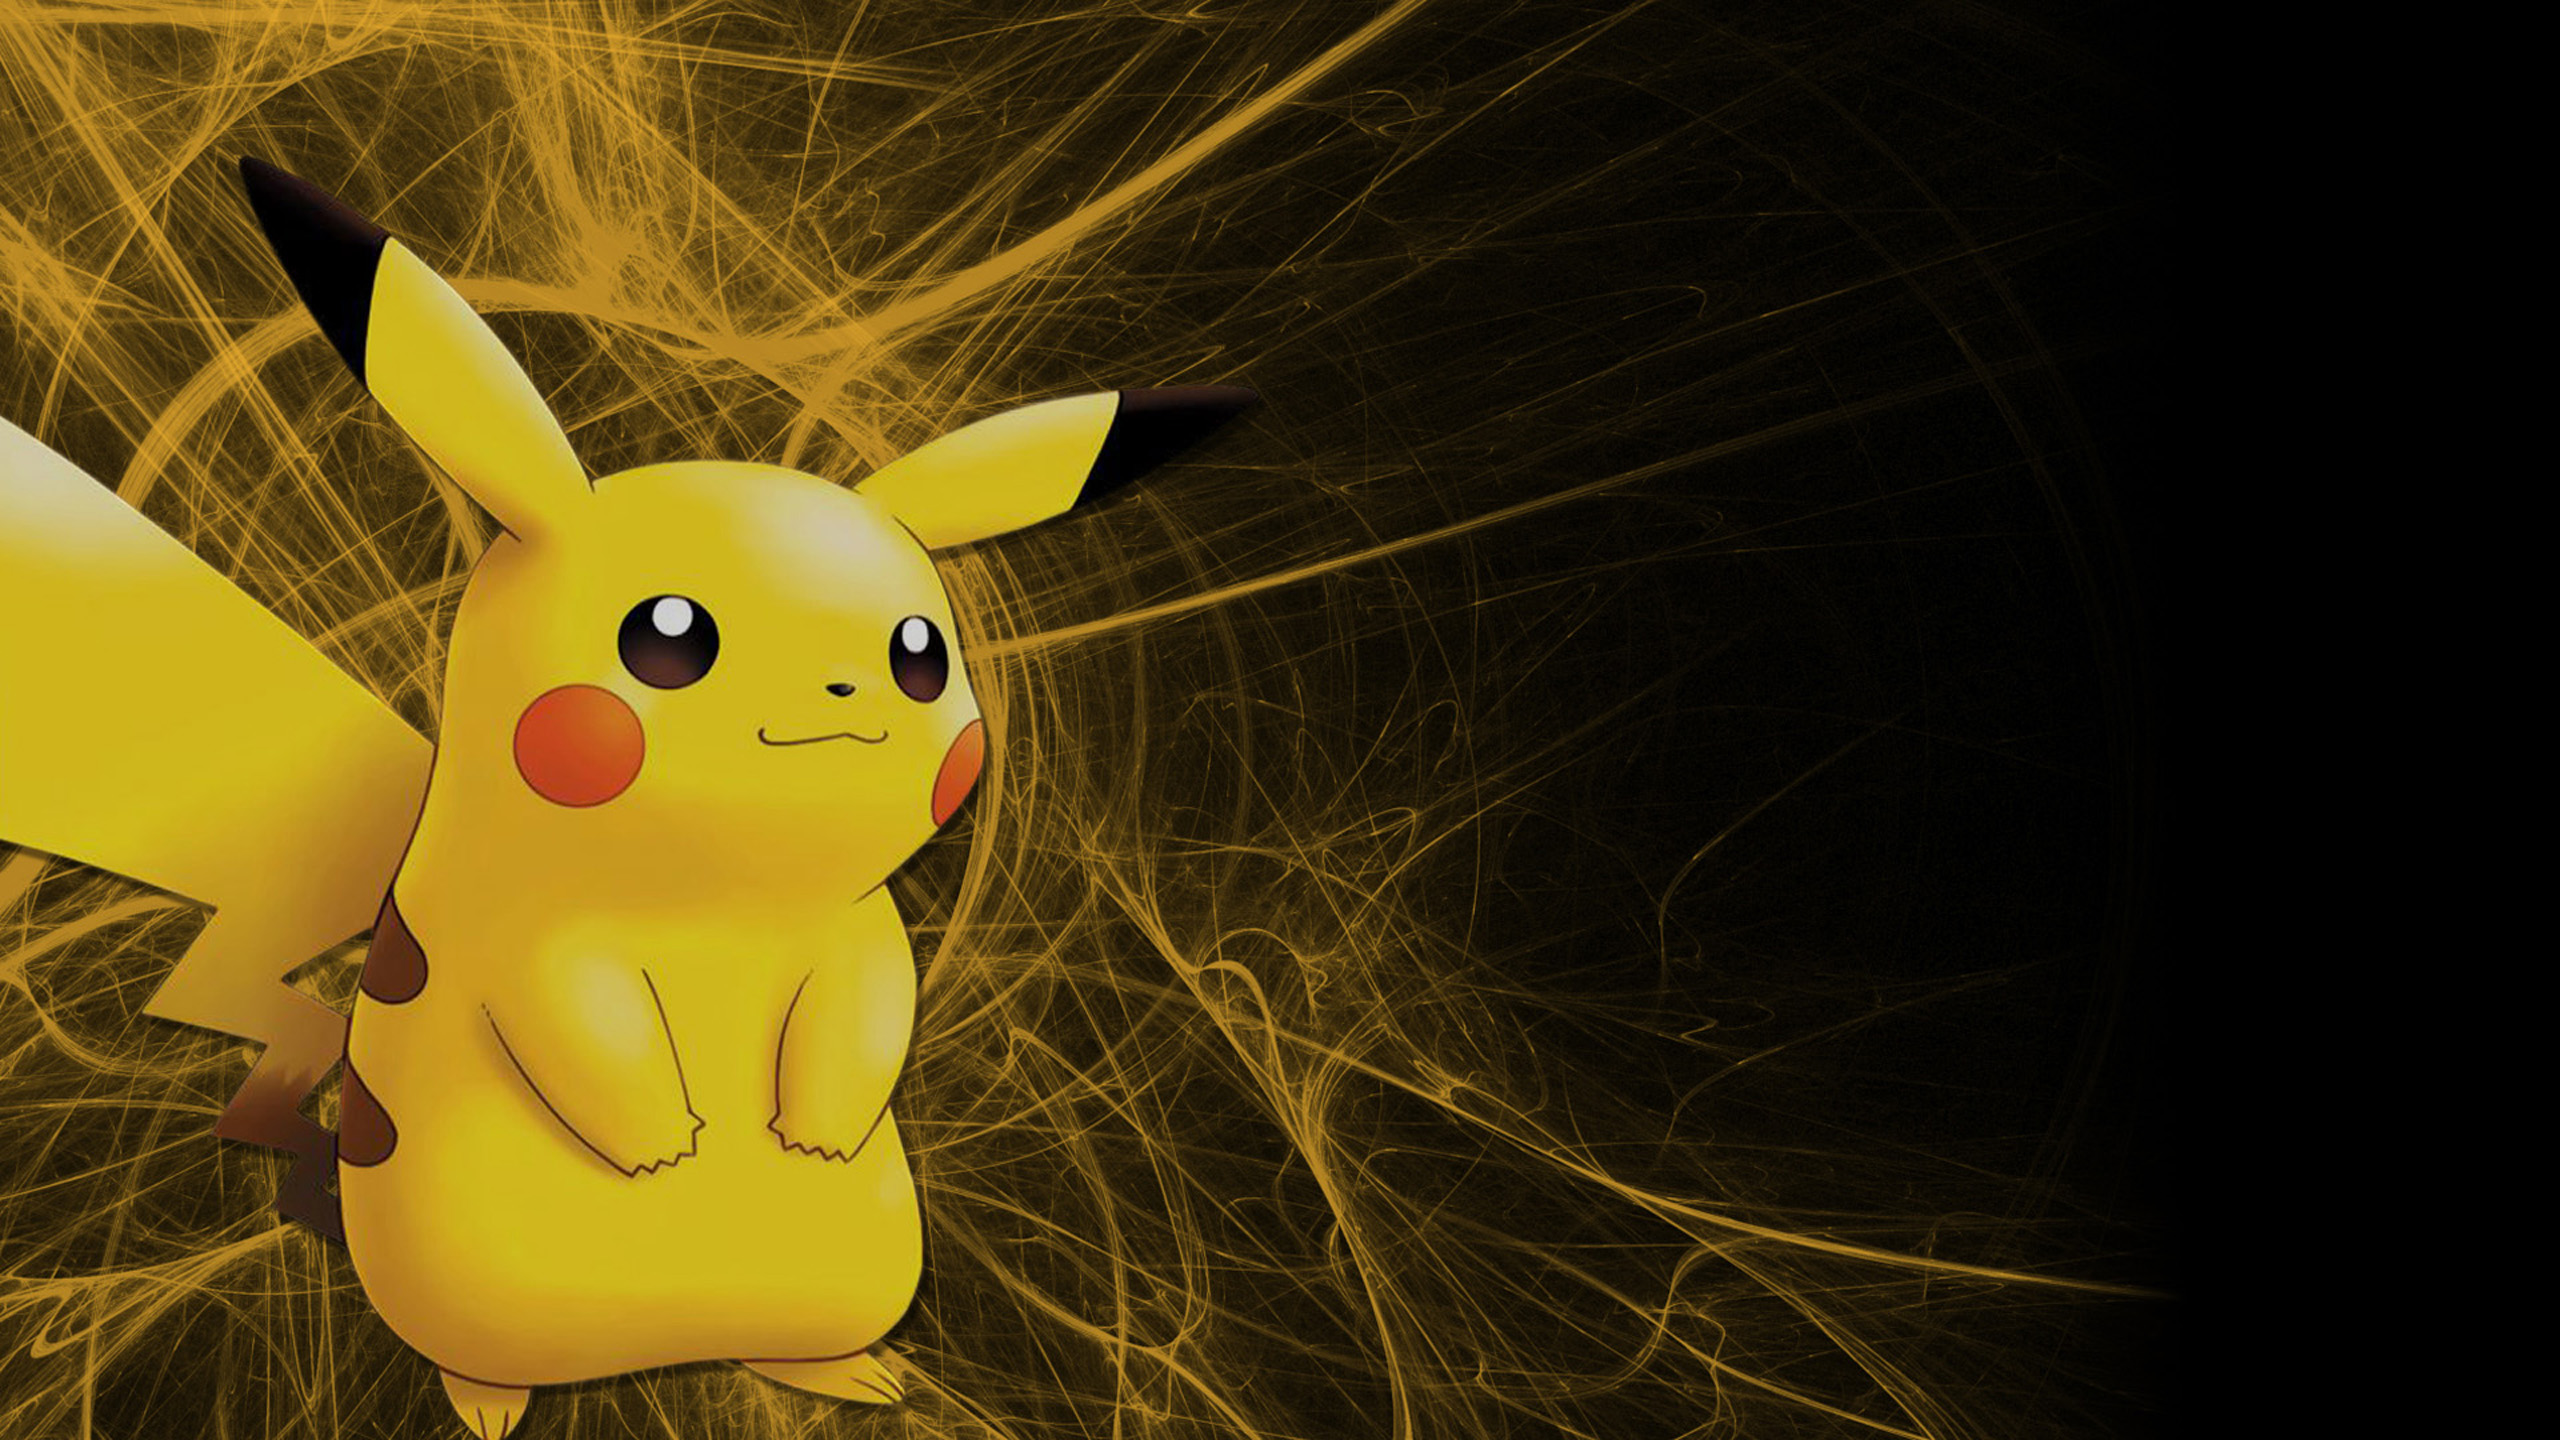 Pokemon Wallpapers Hd Pikachu Pokemon Wallpaper Hd 179538 Hd Wallpaper Backgrounds Download